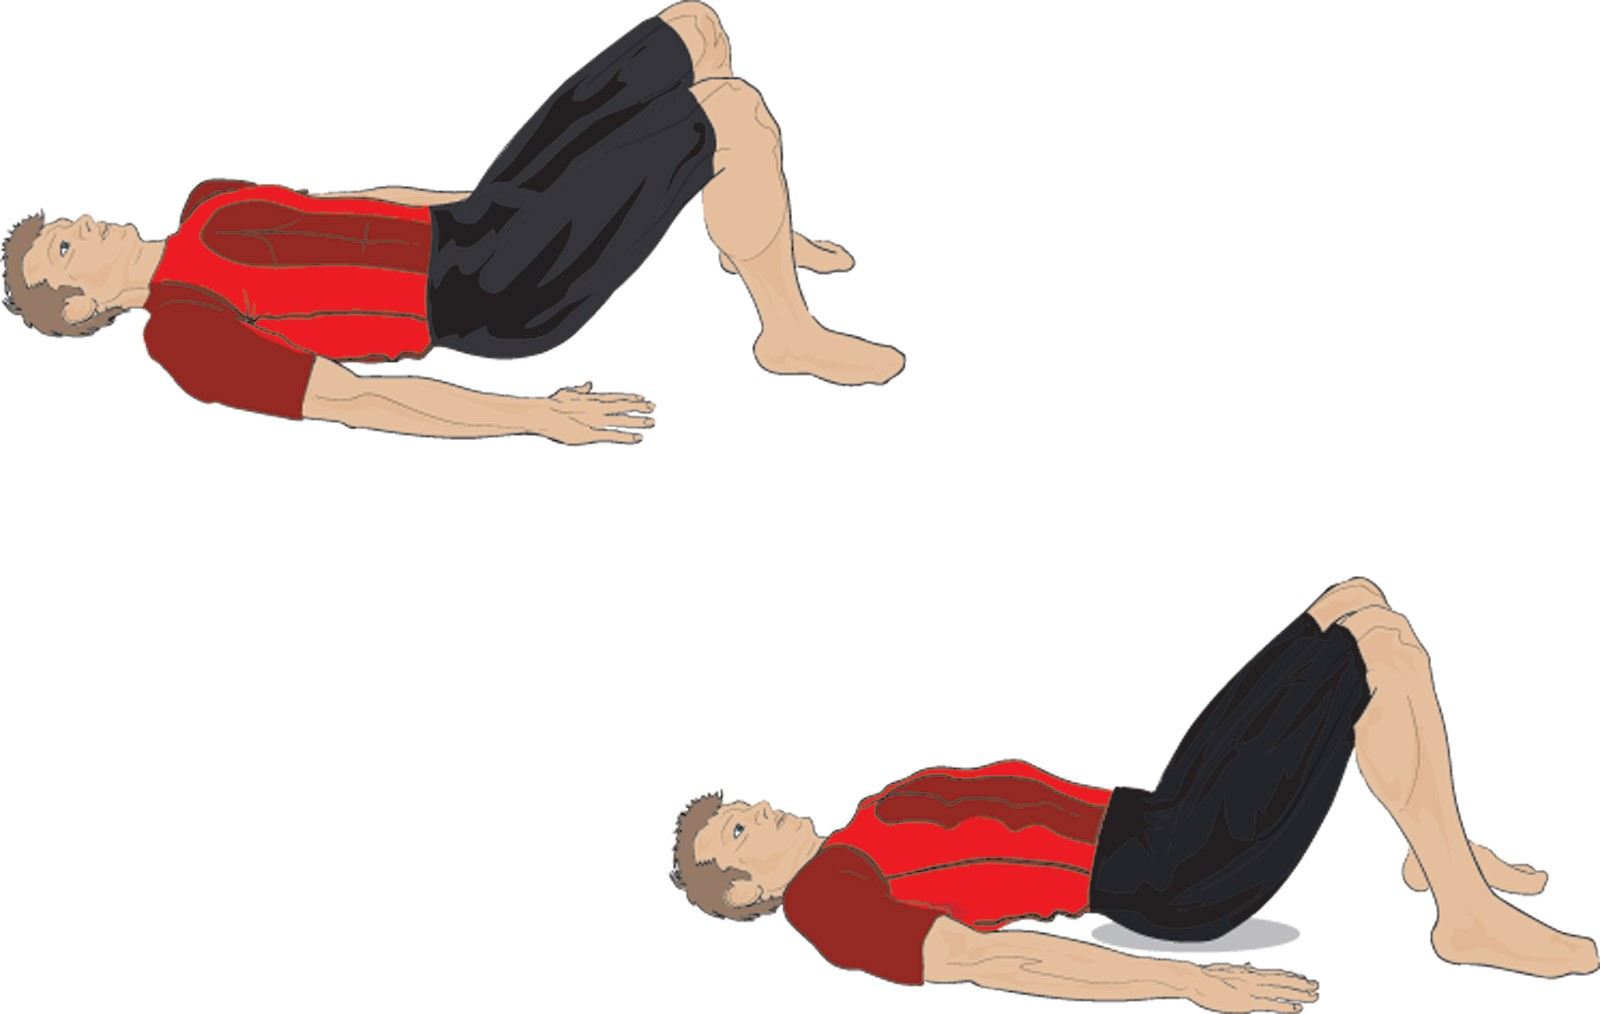 Here's how to do pelvic tilts